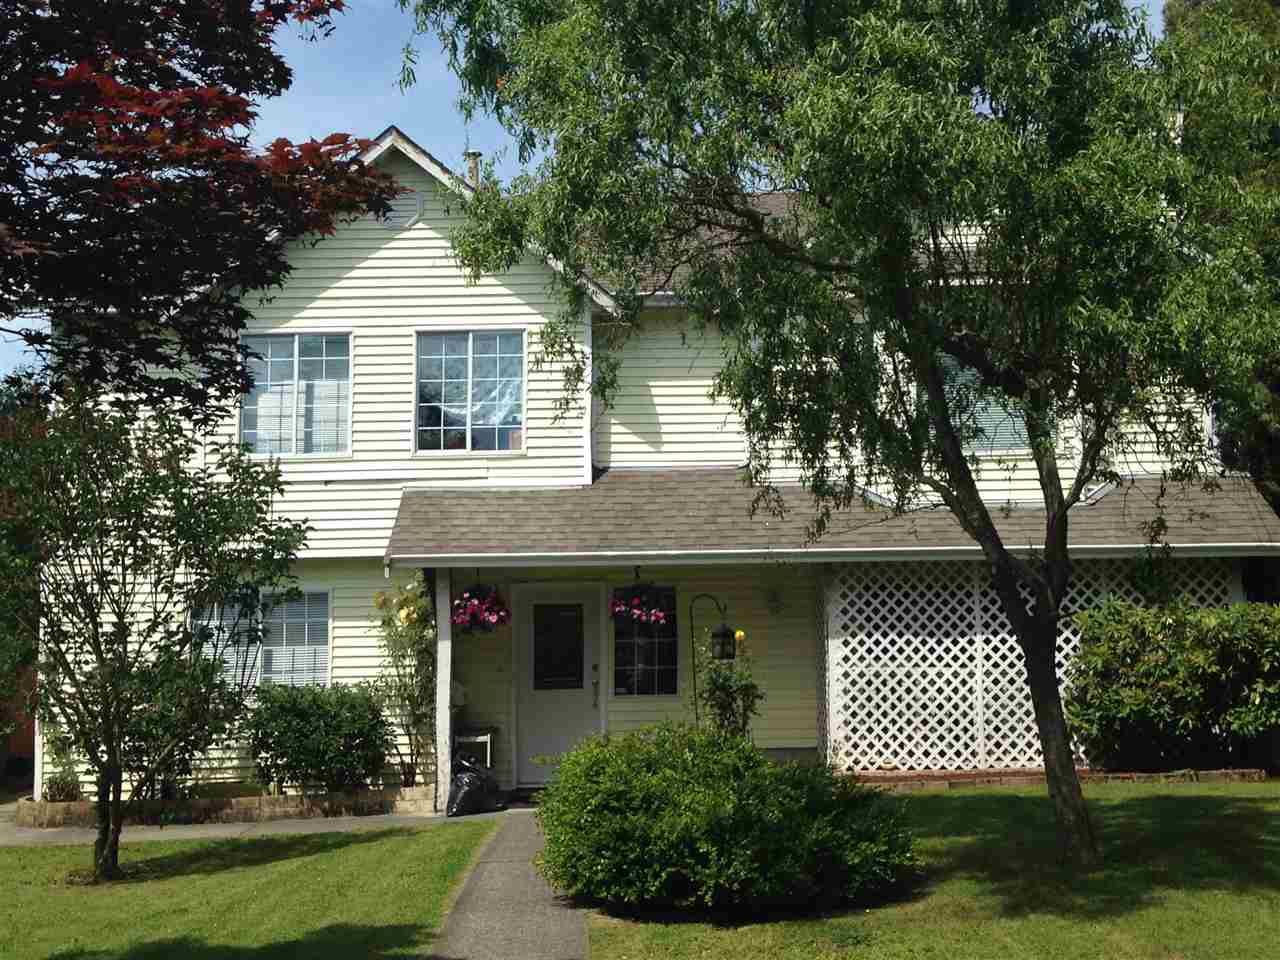 Main Photo: 18231 60 Avenue in Surrey: Cloverdale BC House for sale (Cloverdale)  : MLS®# R2078103